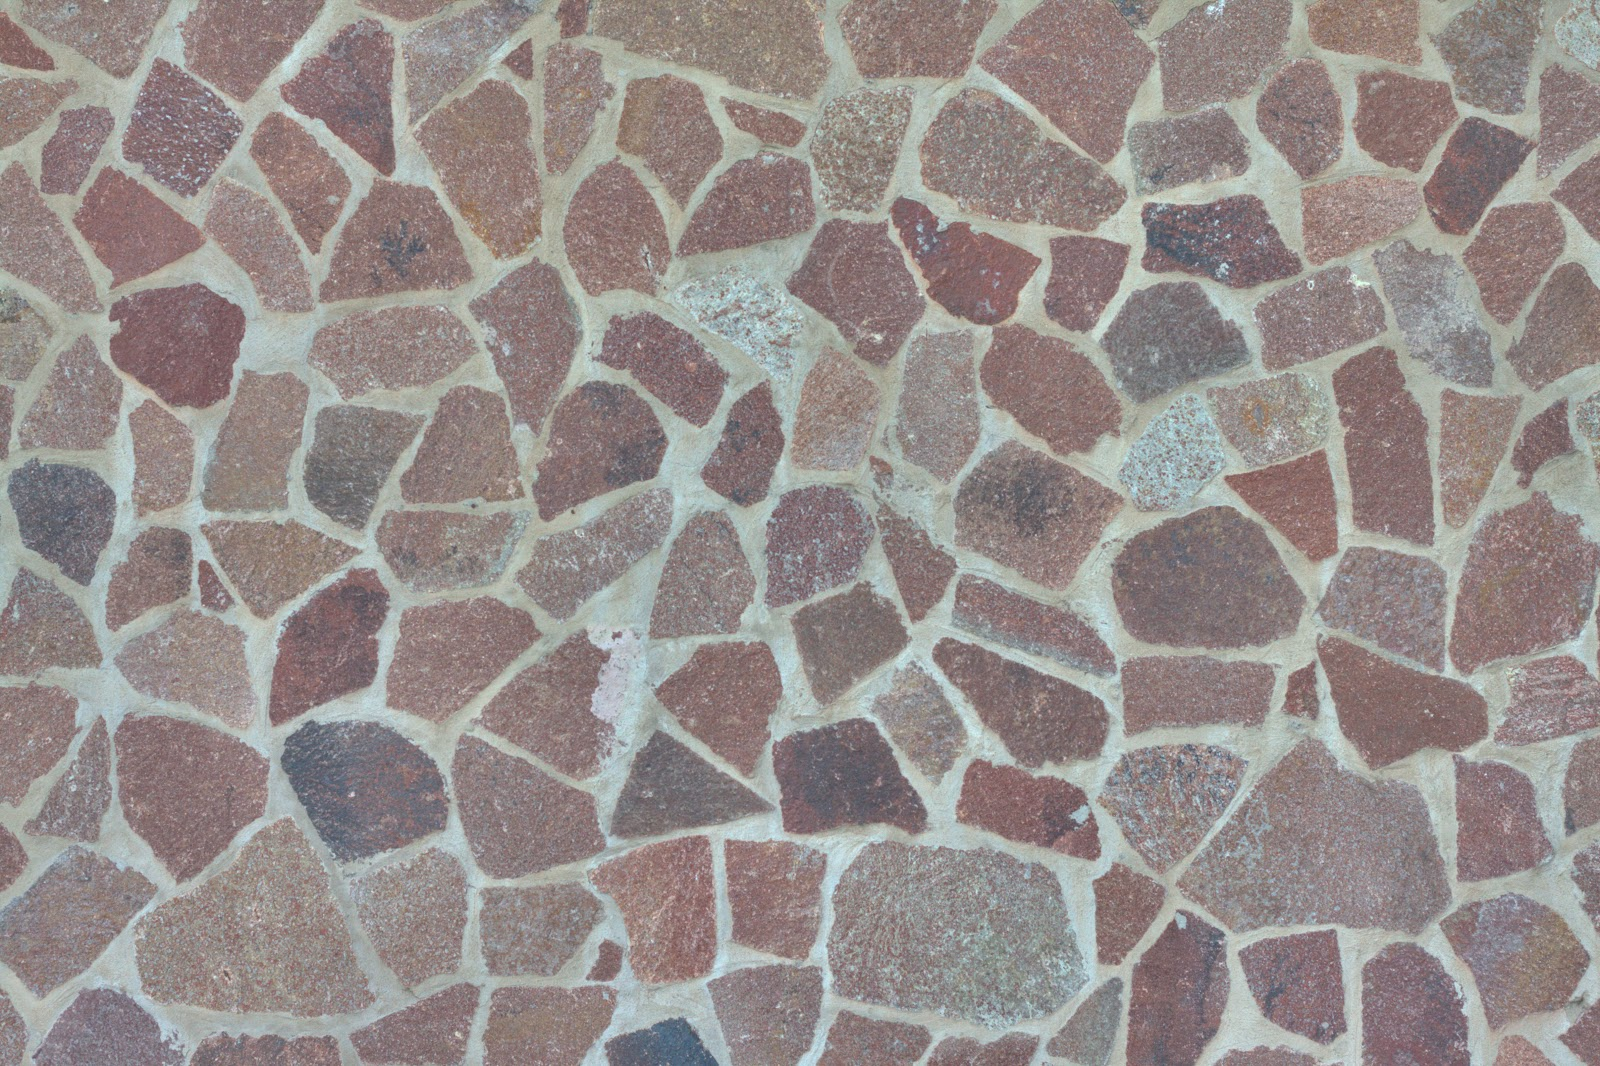 Stone Tile Floor Texture awesome stone tile floor texture images - best image 3d home